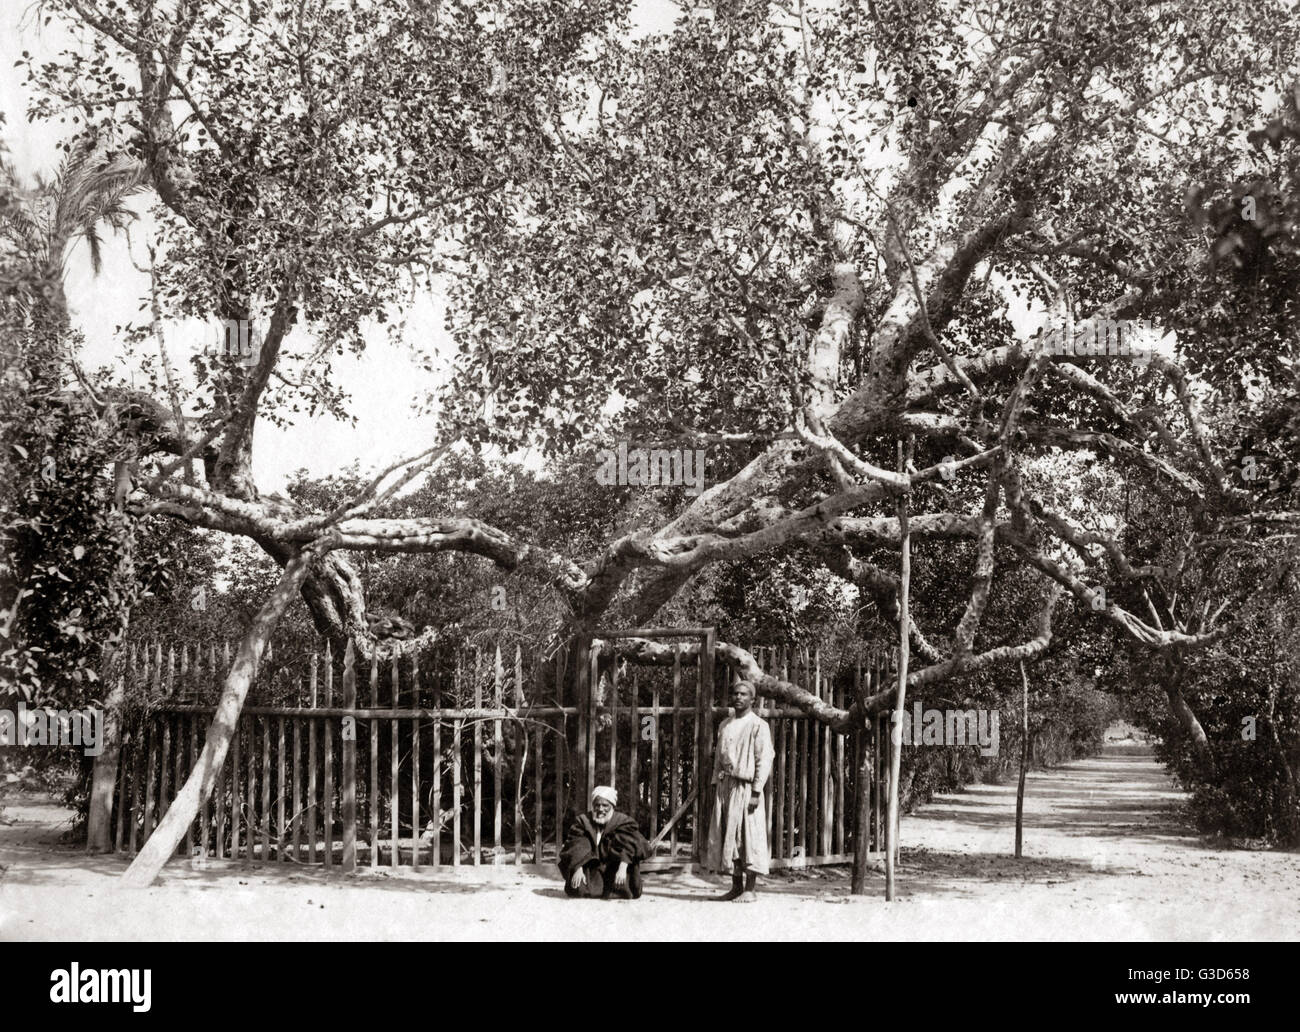 Old Olive tree in the Garden of Gethsamane 1800s.     Date: 1800s - Stock Image